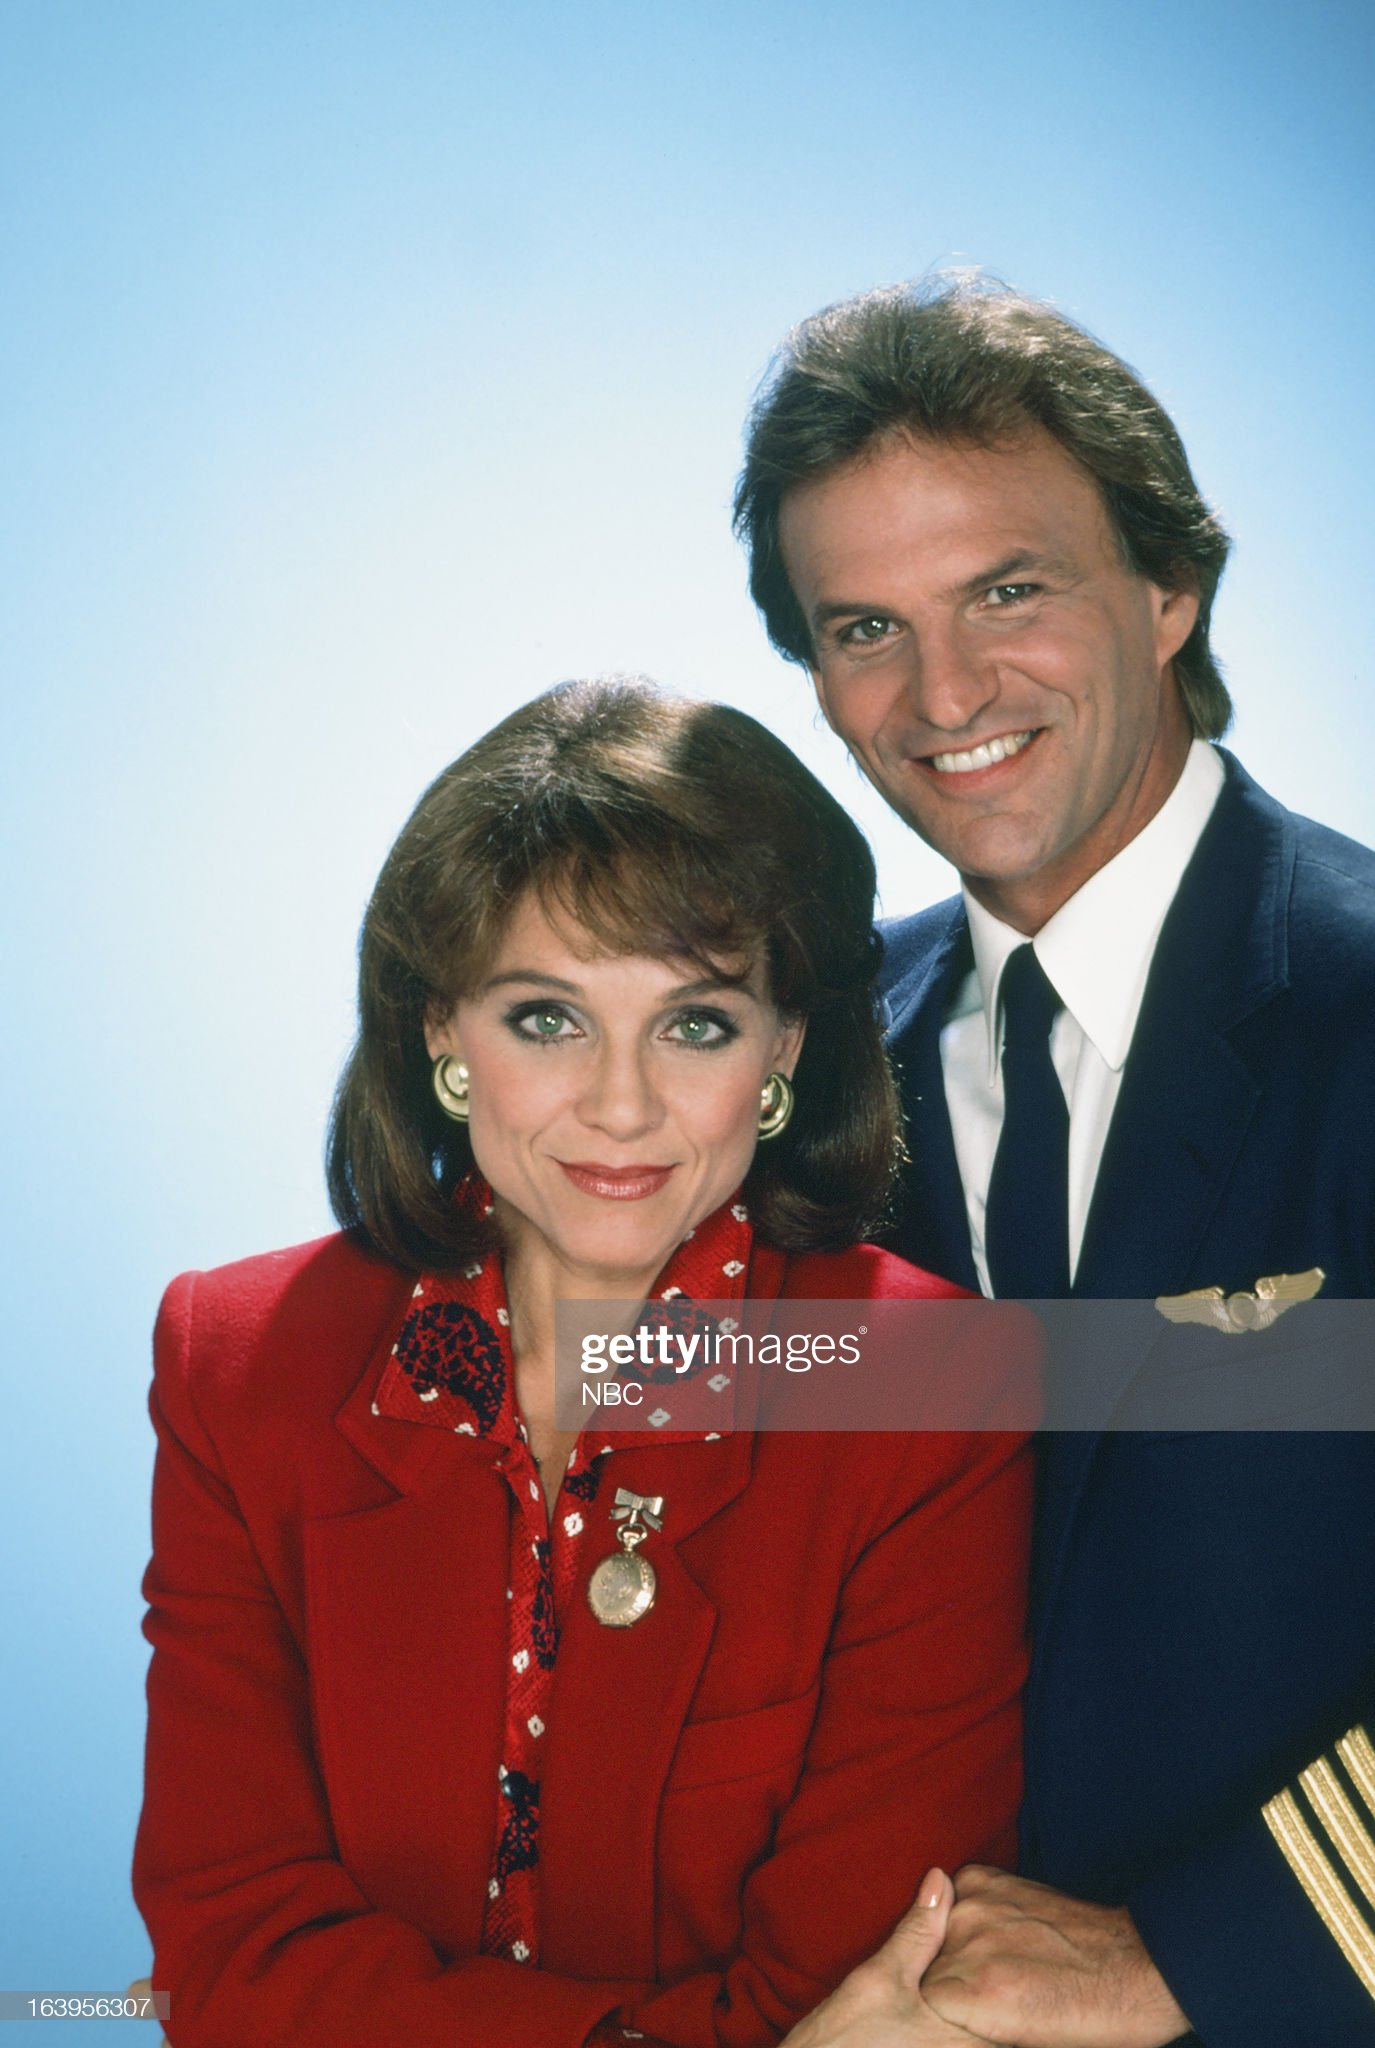 season-1-pictured-valerie-harper-as-valerie-hogan-josh-taylor-as-picture-id163956307